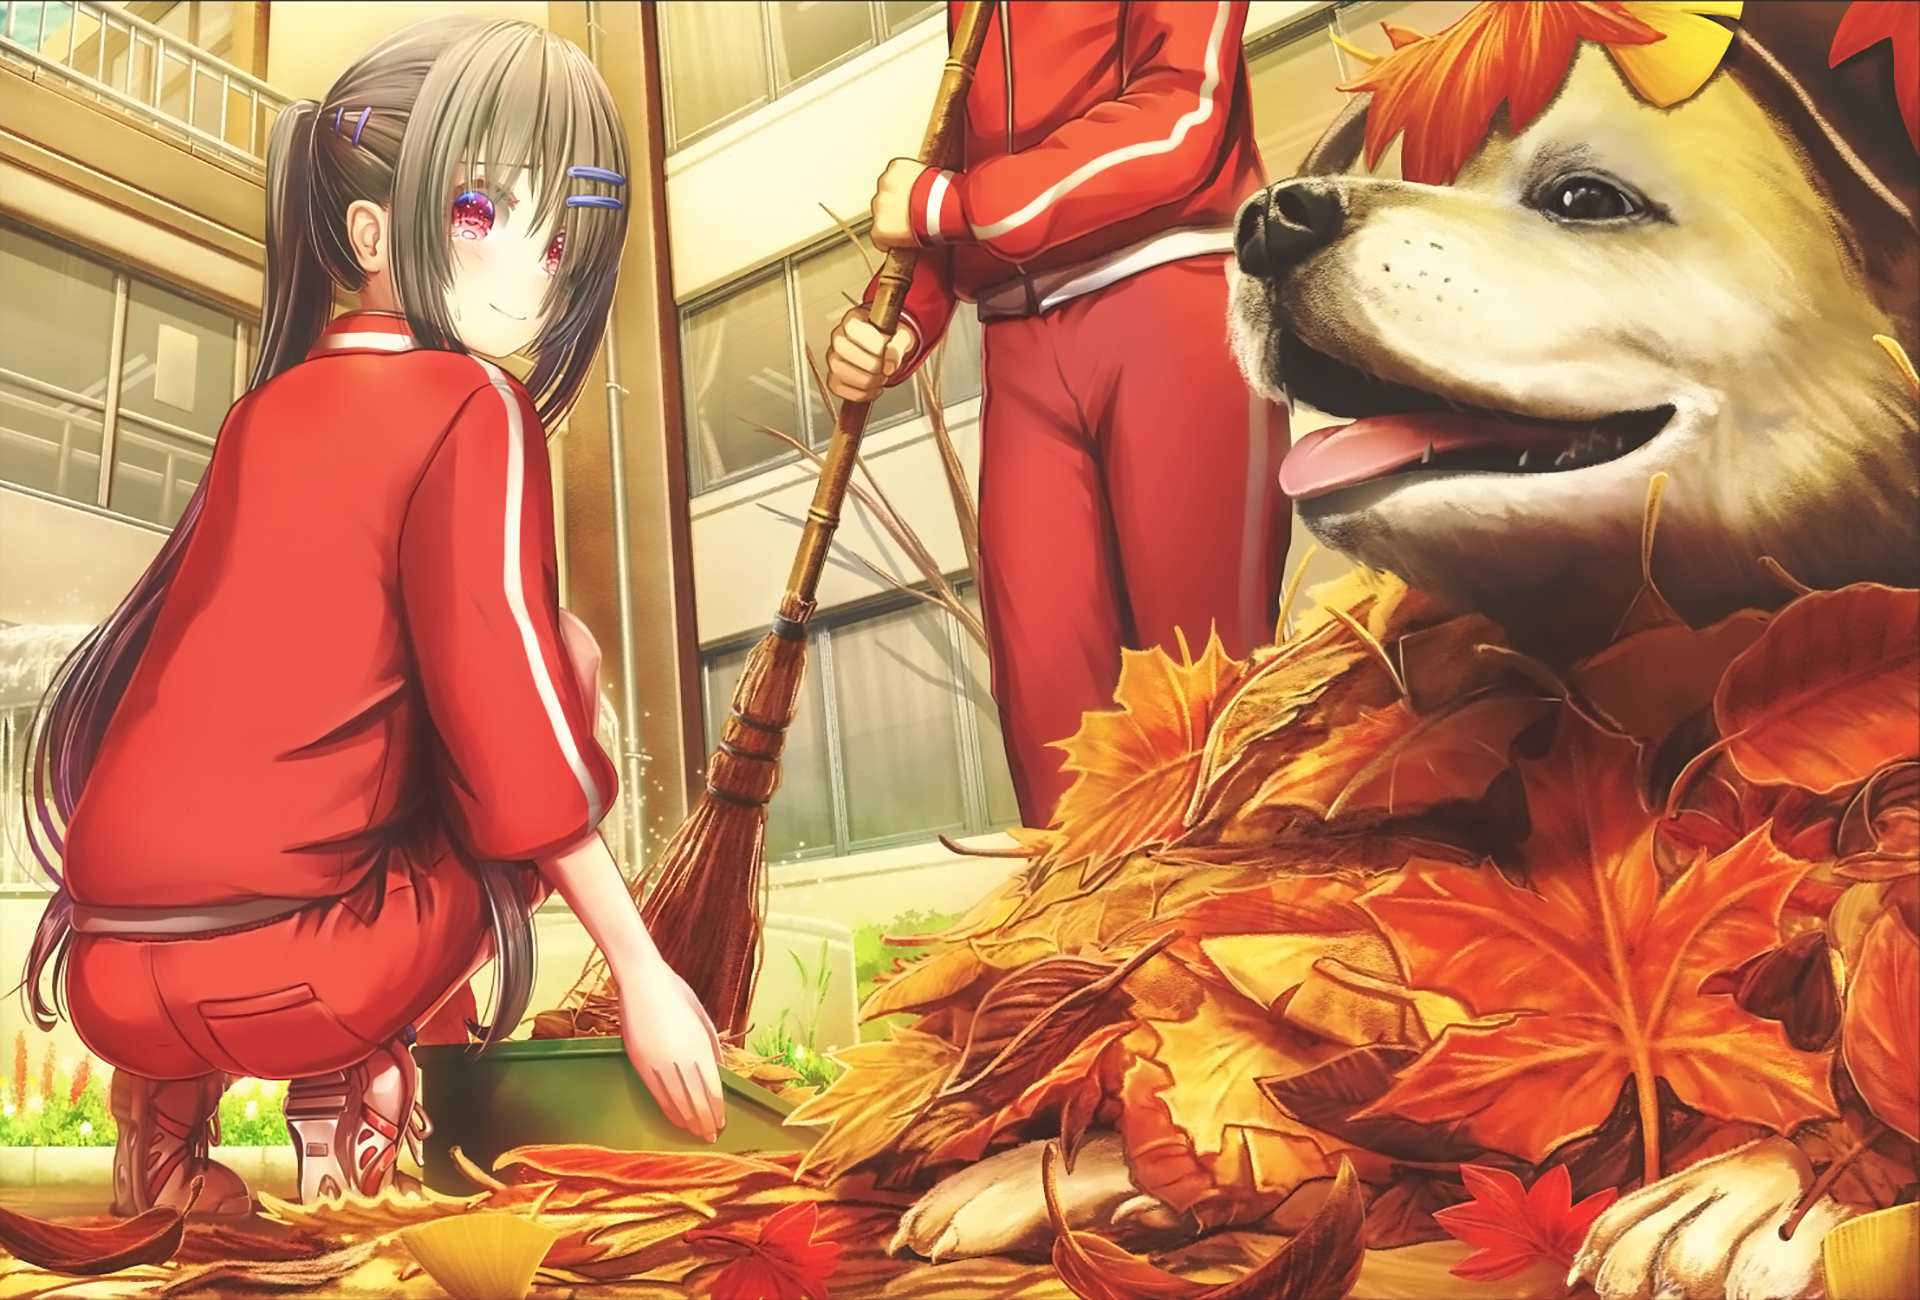 Broom Dog Maple Leafs Gym Clothes Red Eyes Hair Pins Schoolgirl Ponytail Anime Girls Fall 1920x1300